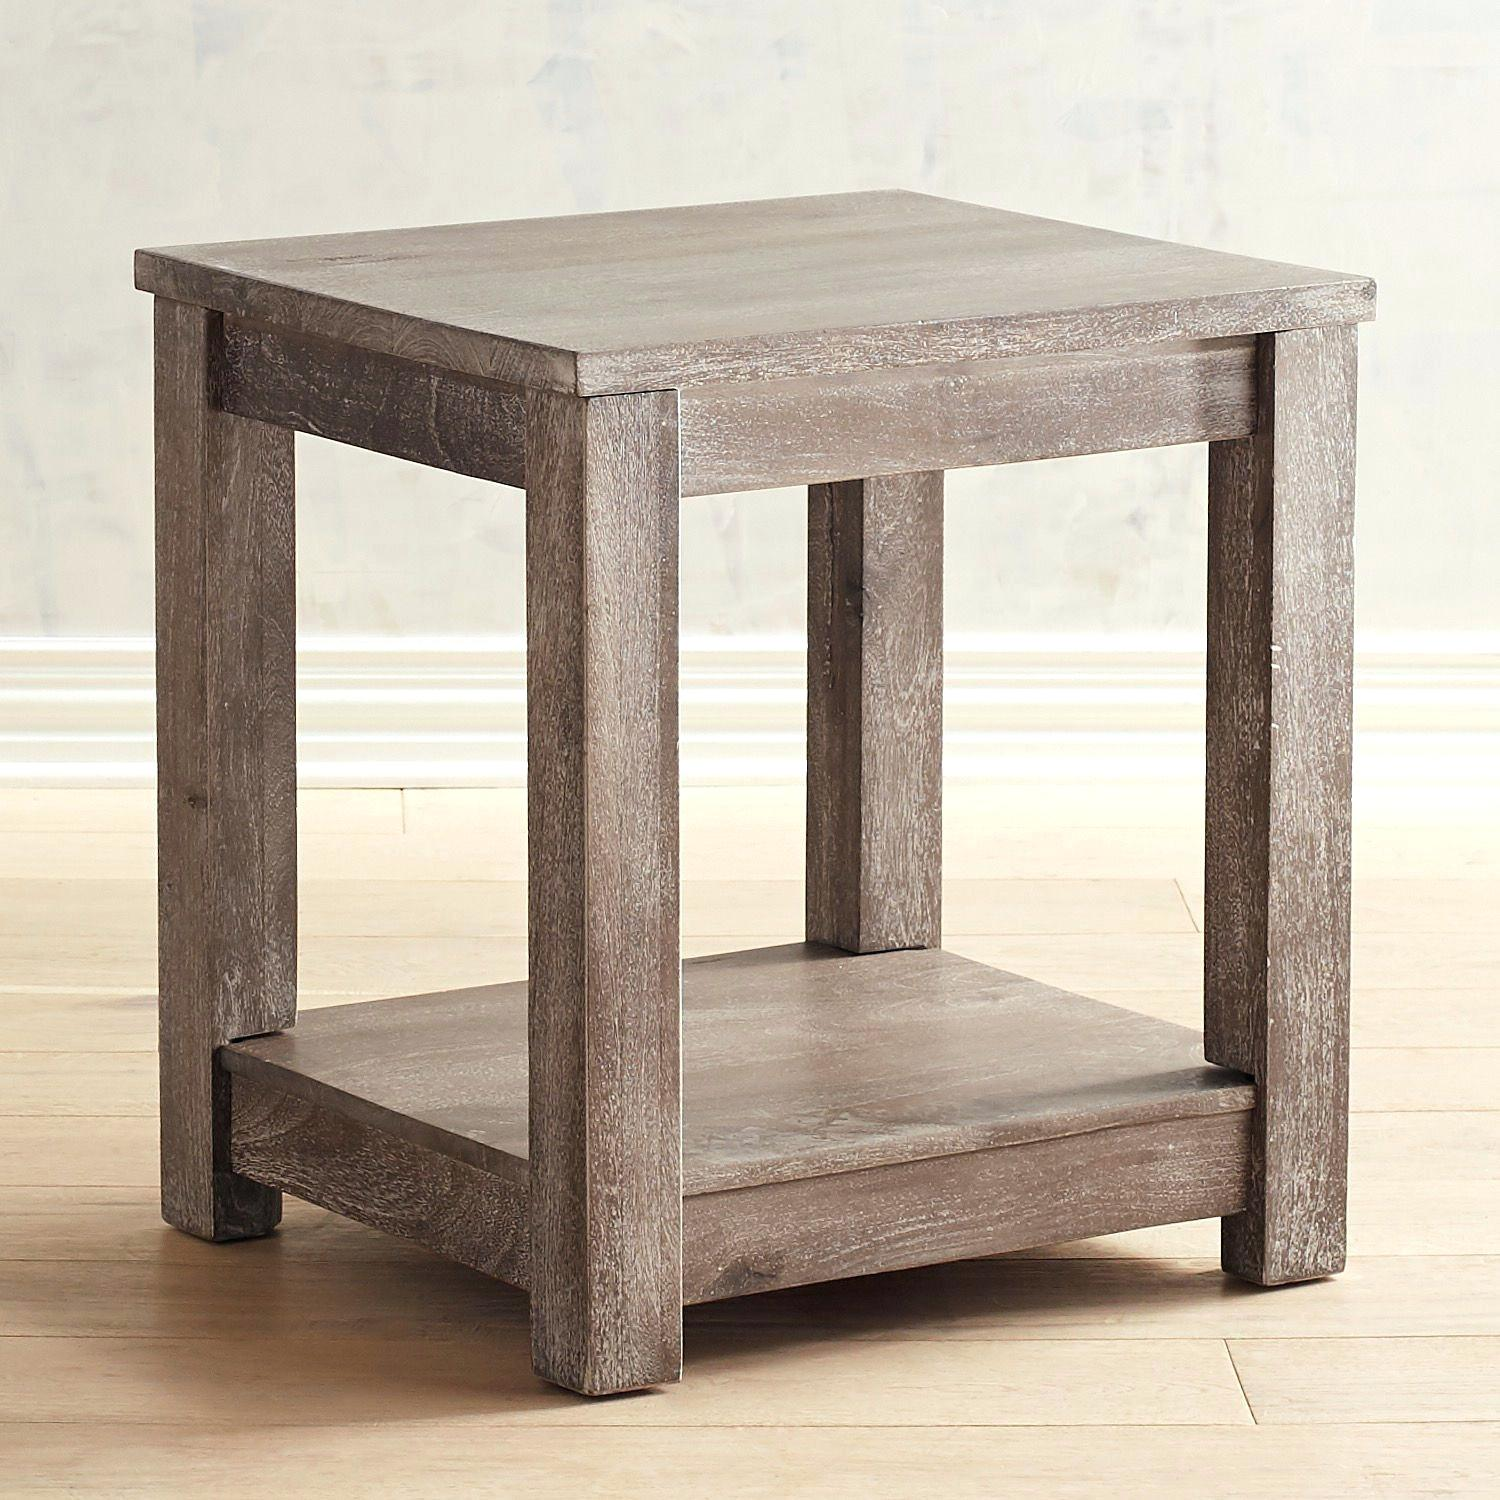 low coffee table ikea the terrific unbelievable pier one accent tables imports drum collection round and end secret storage bronze legs wood dining room linon titian rustic gray